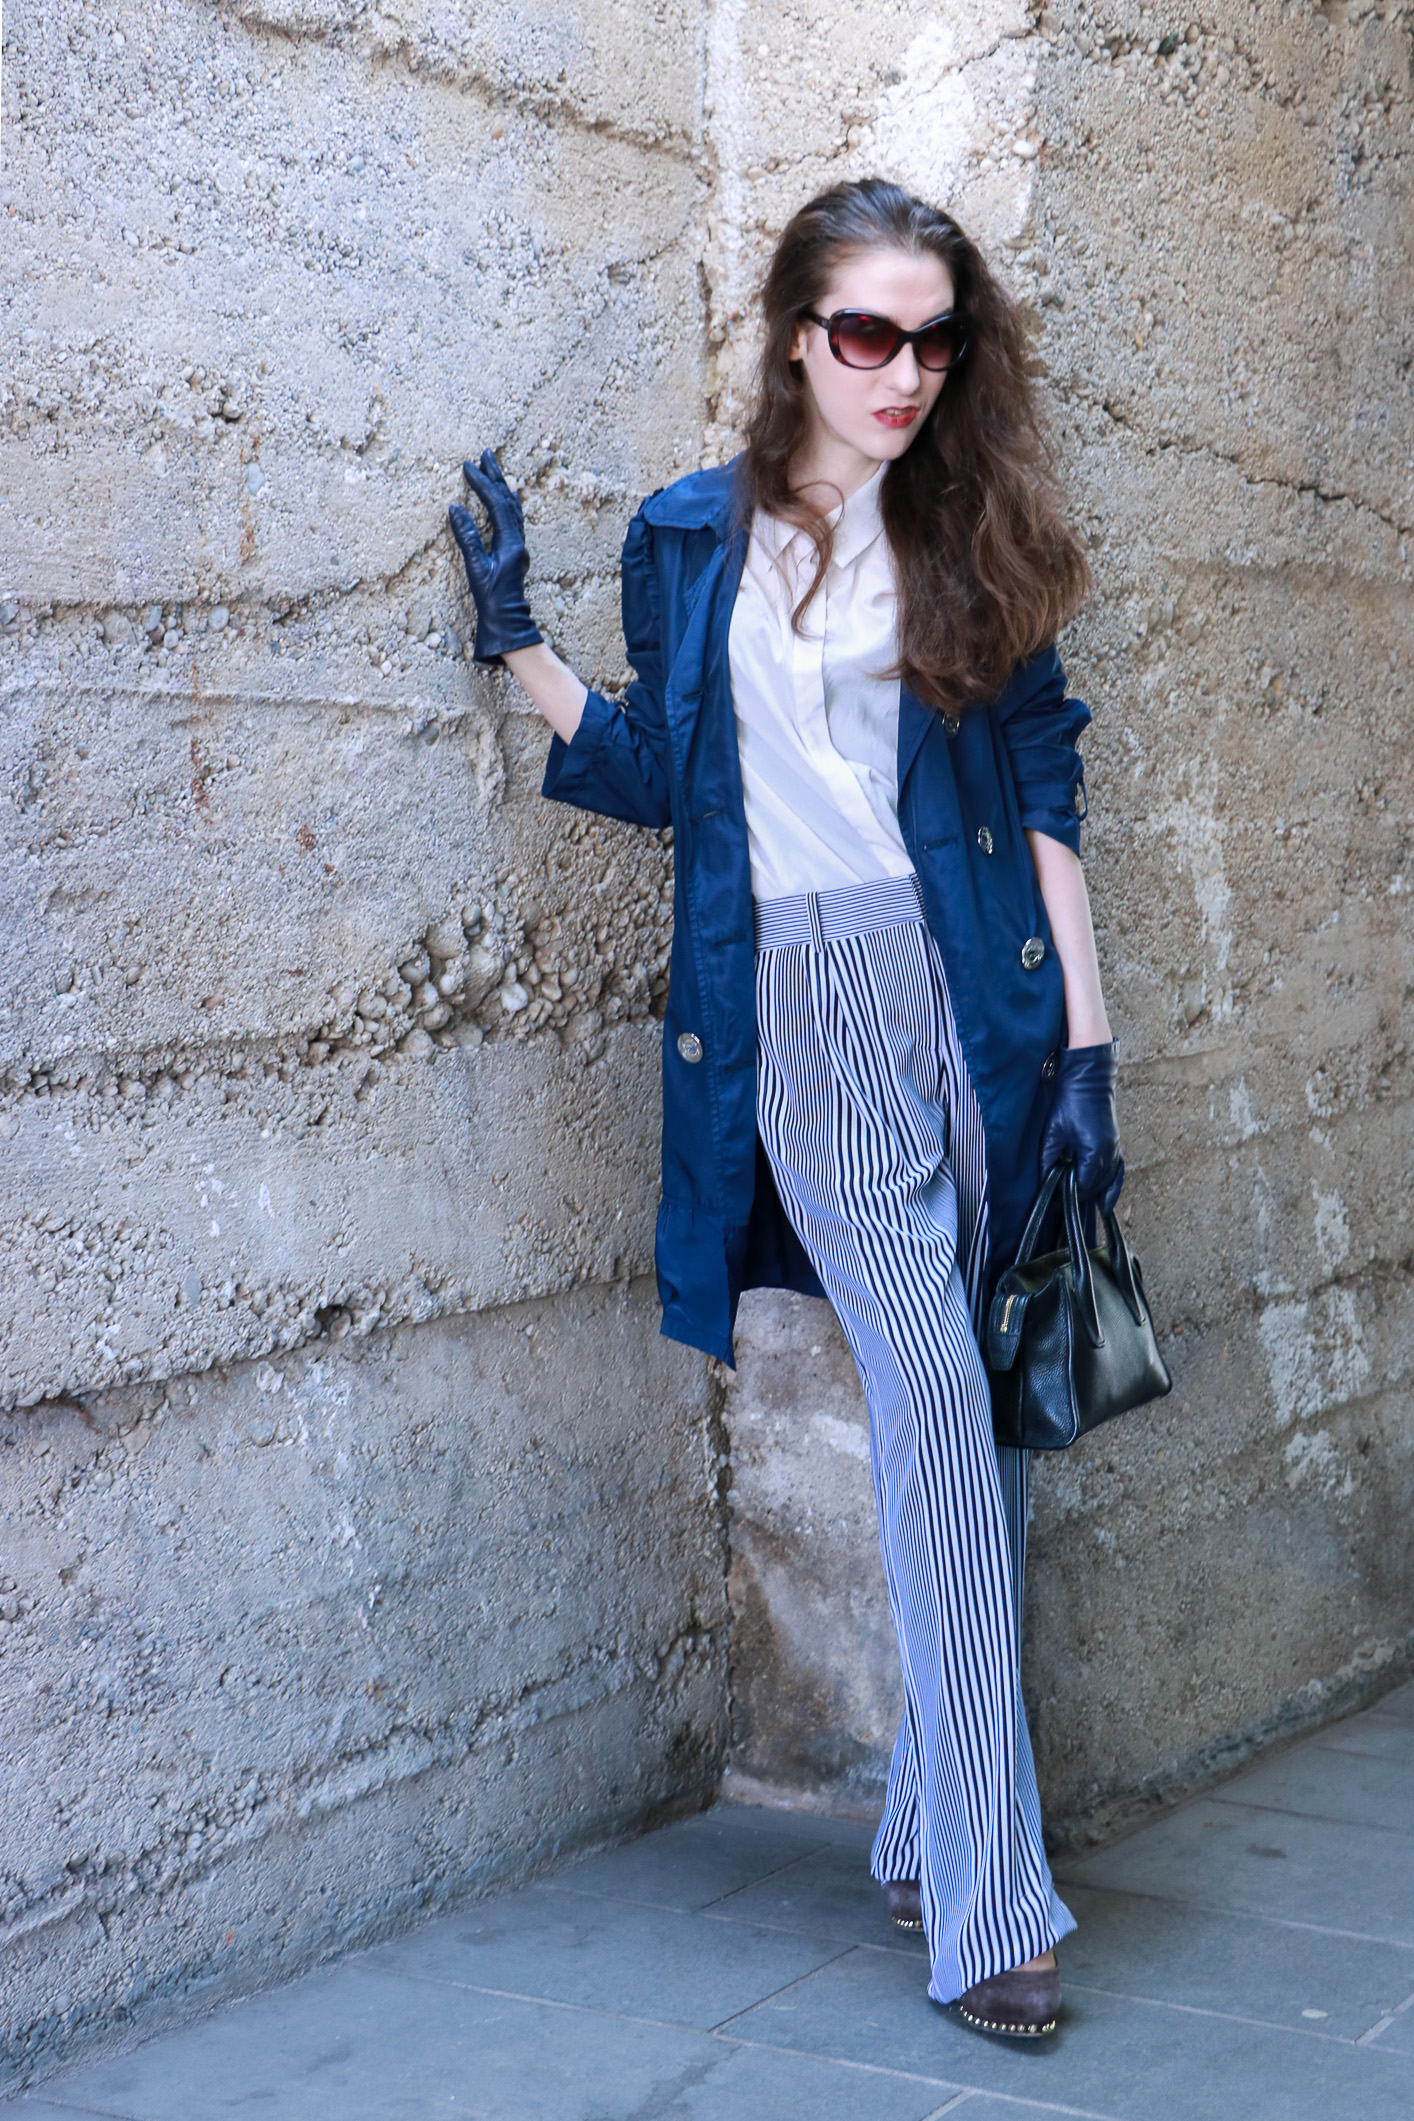 Fashion blogger Veronika Lipar of Brunette From Wall Street sharing how to wear wide-leg pants with stripes for a chic style this spring